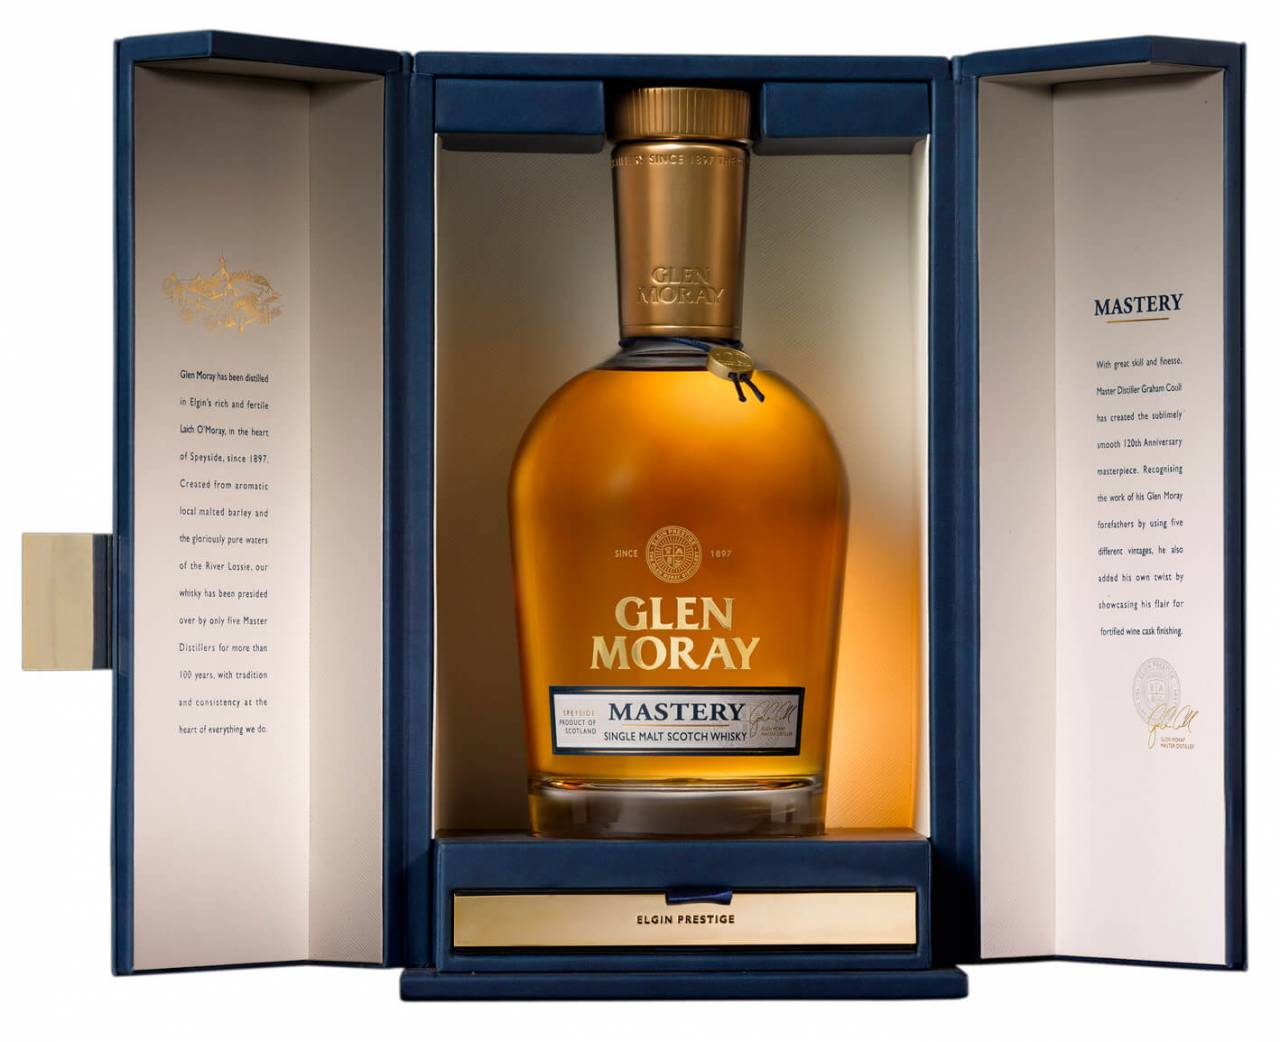 Glen Moray Mastery Whisky 0,7l